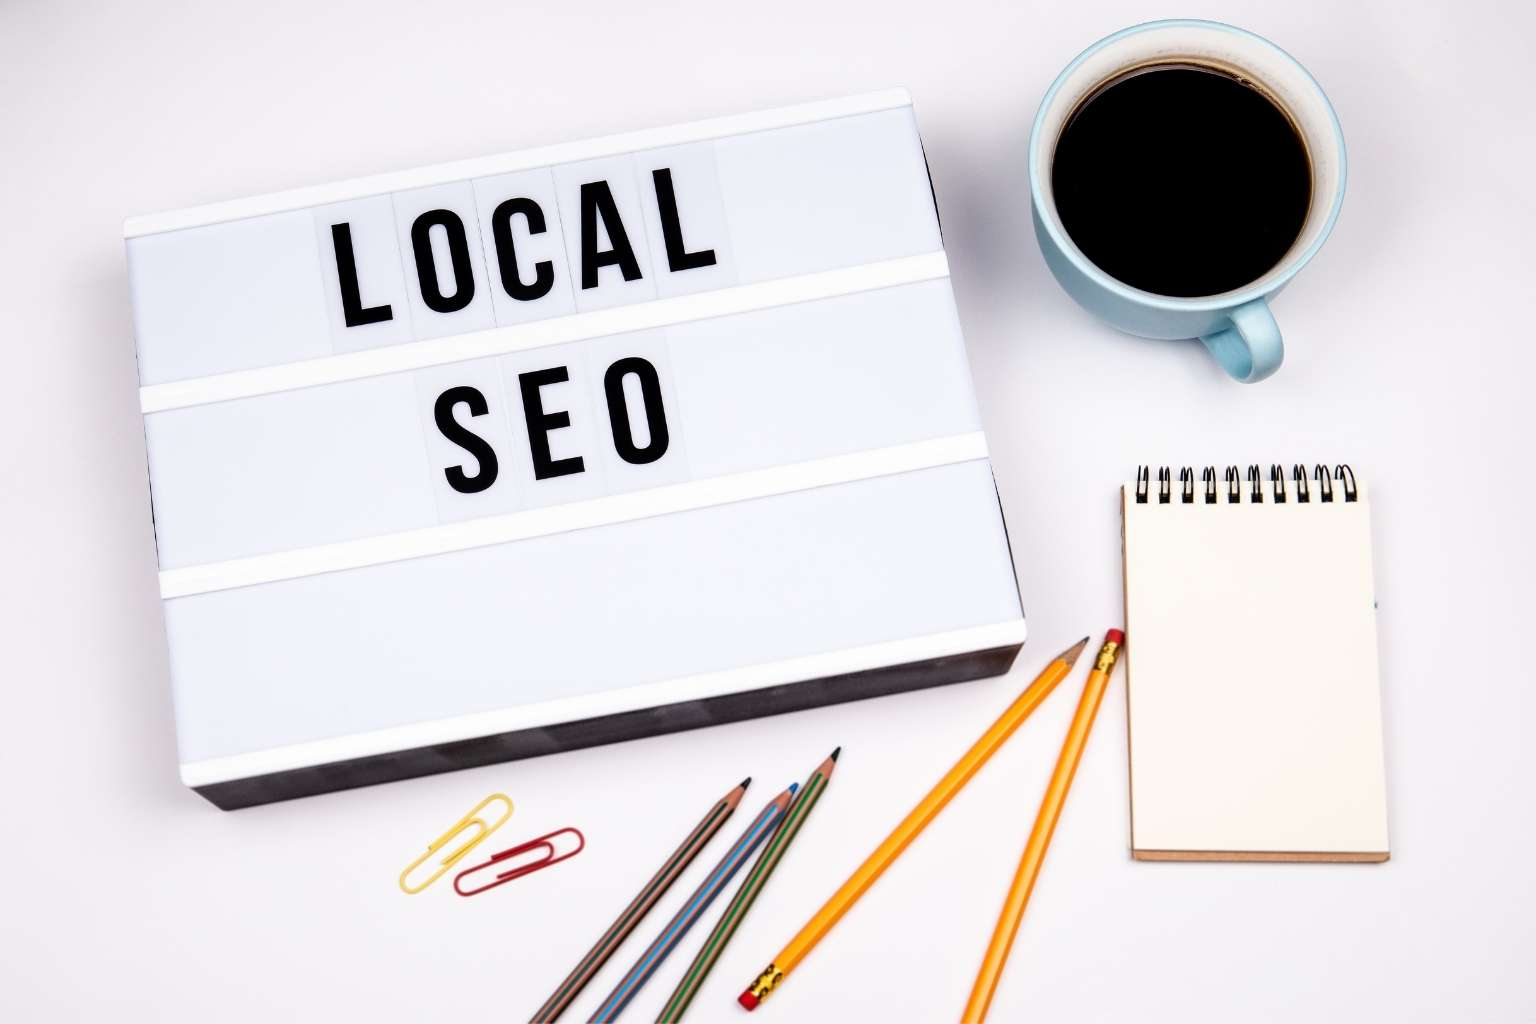 Local SEO for Rubber Surfacing Business - How to Increase Qualified Leads and Traffic